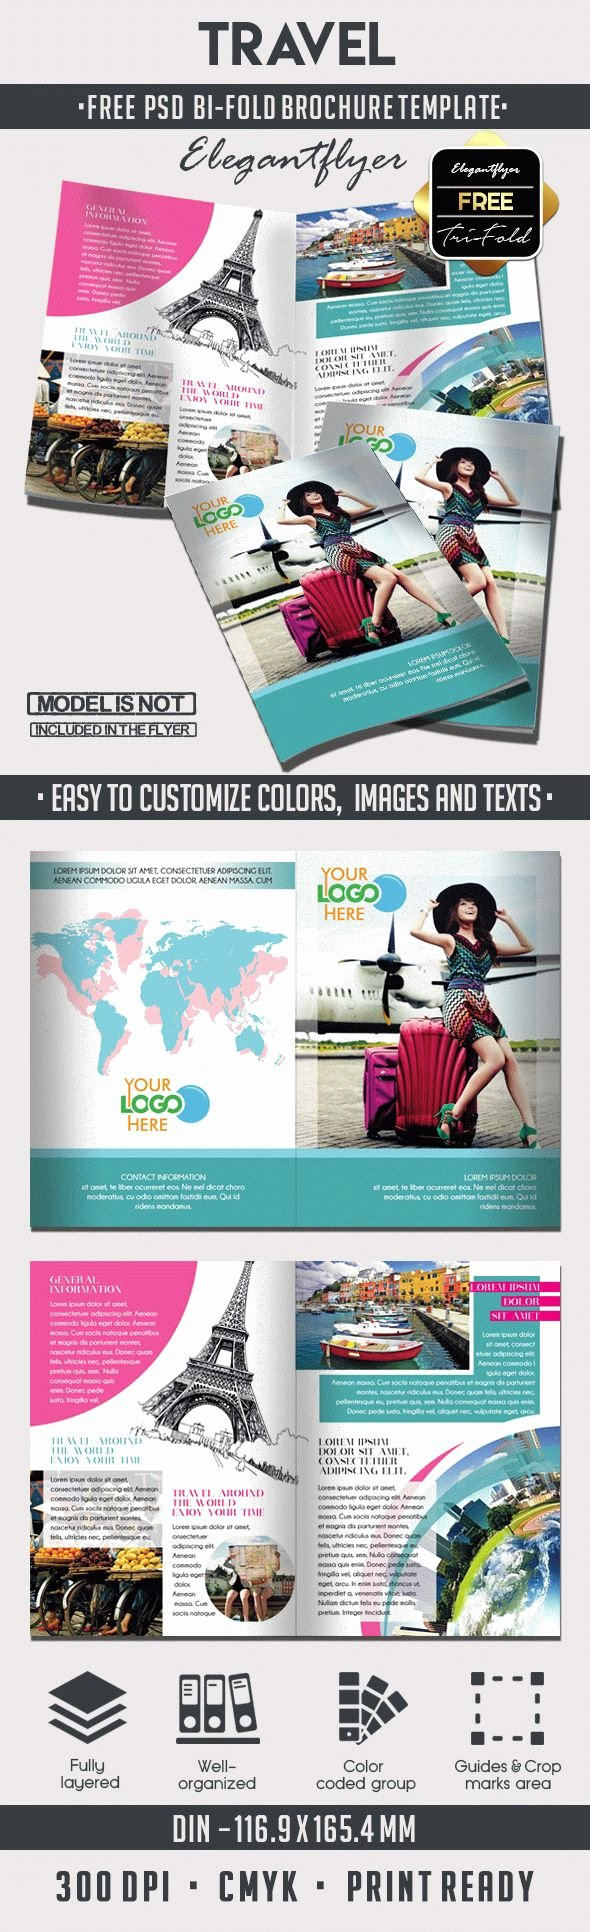 Free Bifold Brochure Template Lovely Travel – Free Bi Fold Psd Brochure Template – by Elegantflyer